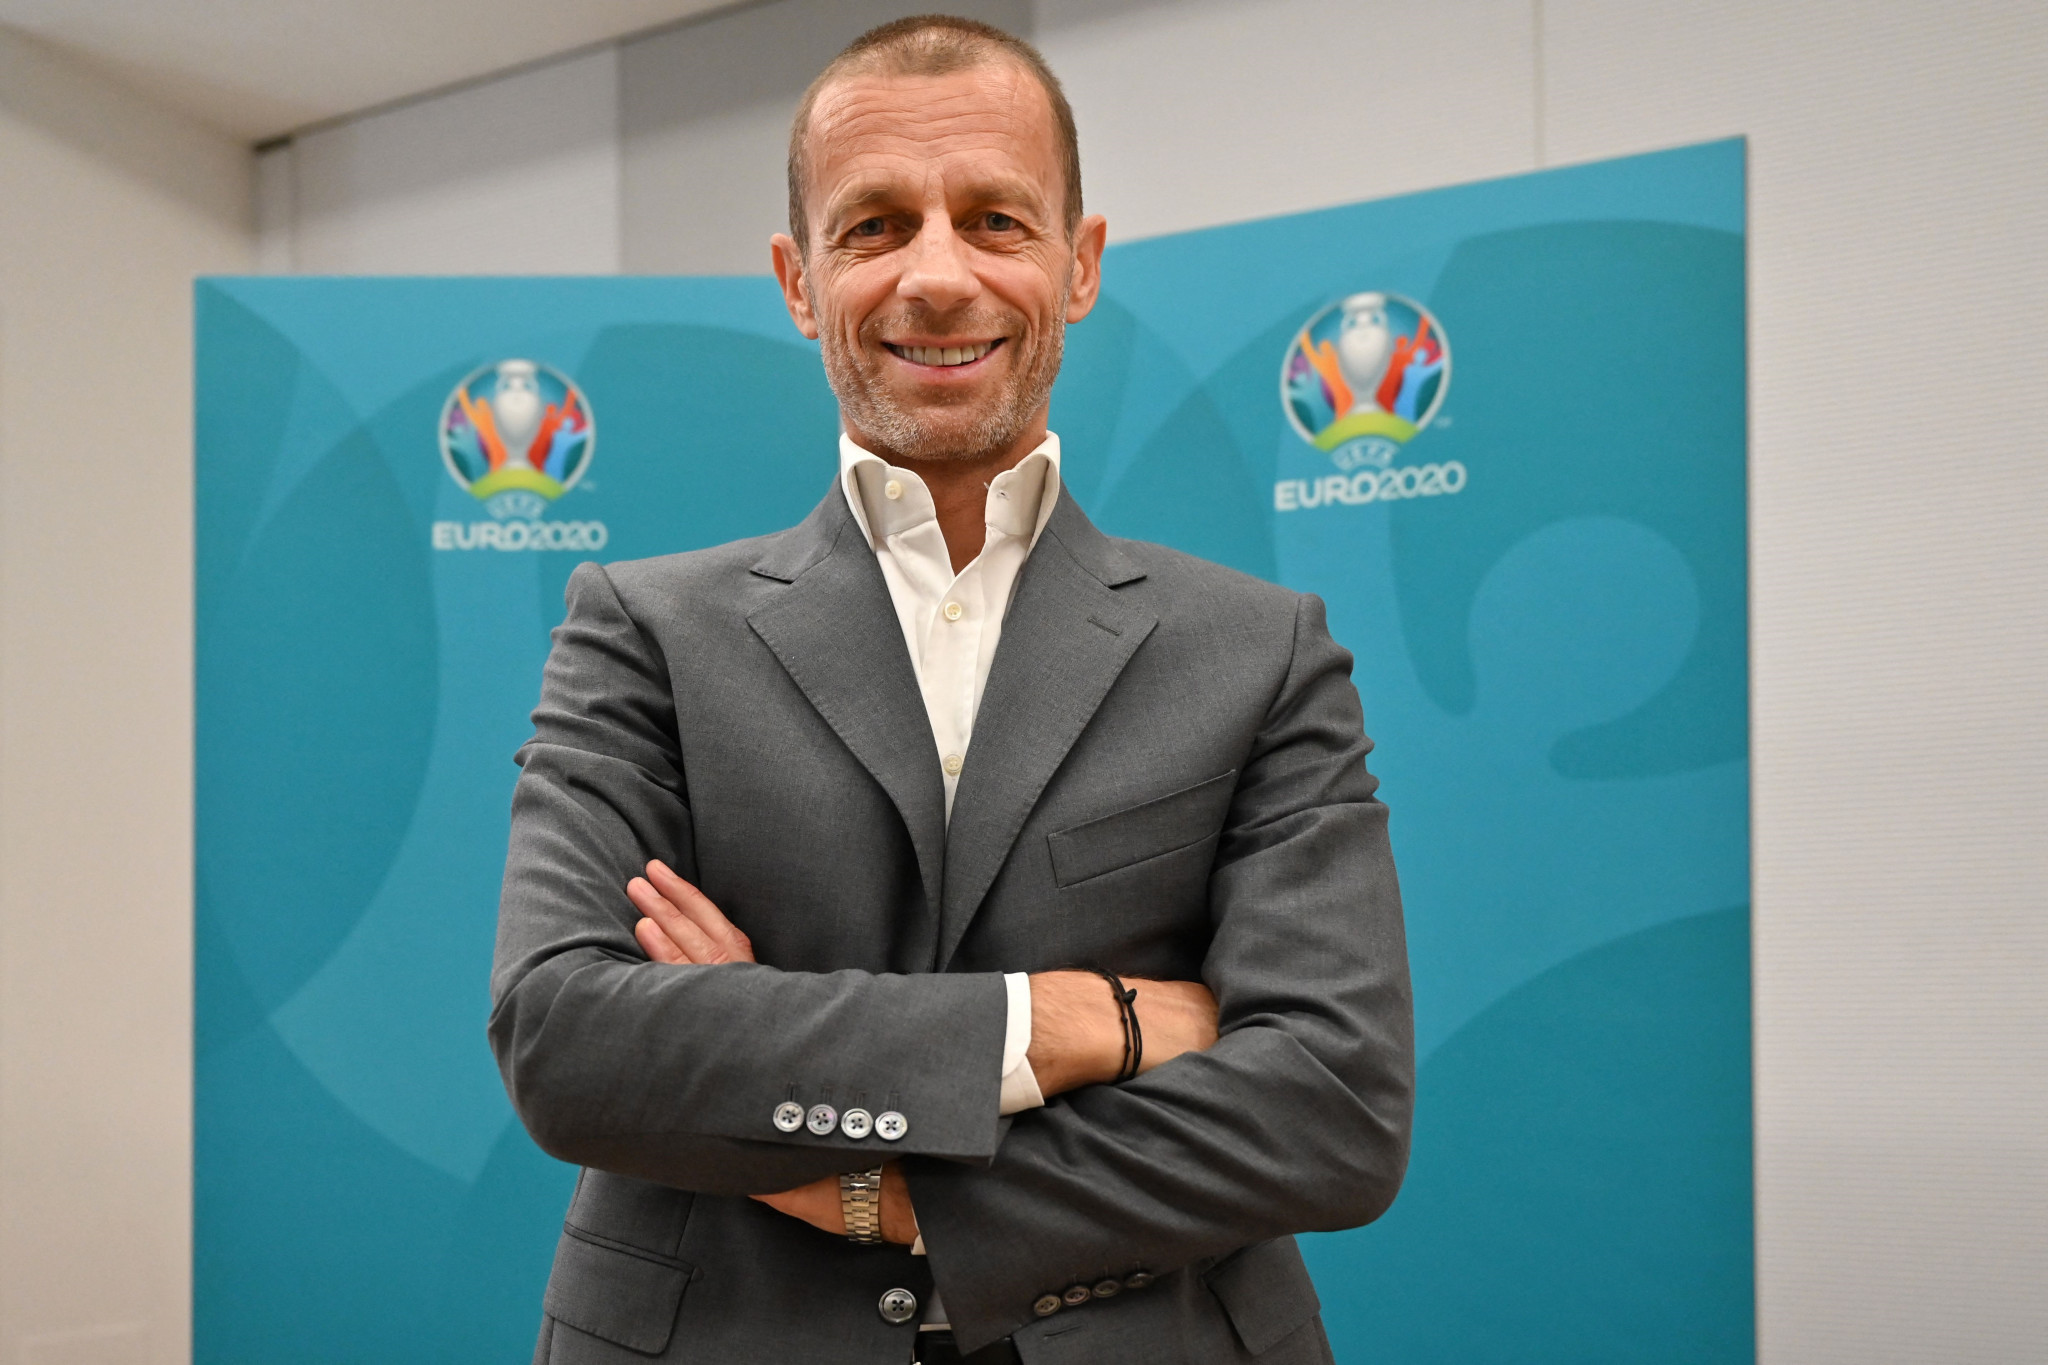 UEFA President Aleksander Čeferin is opposed to the FIFA World Cup being held every two years ©Getty Images